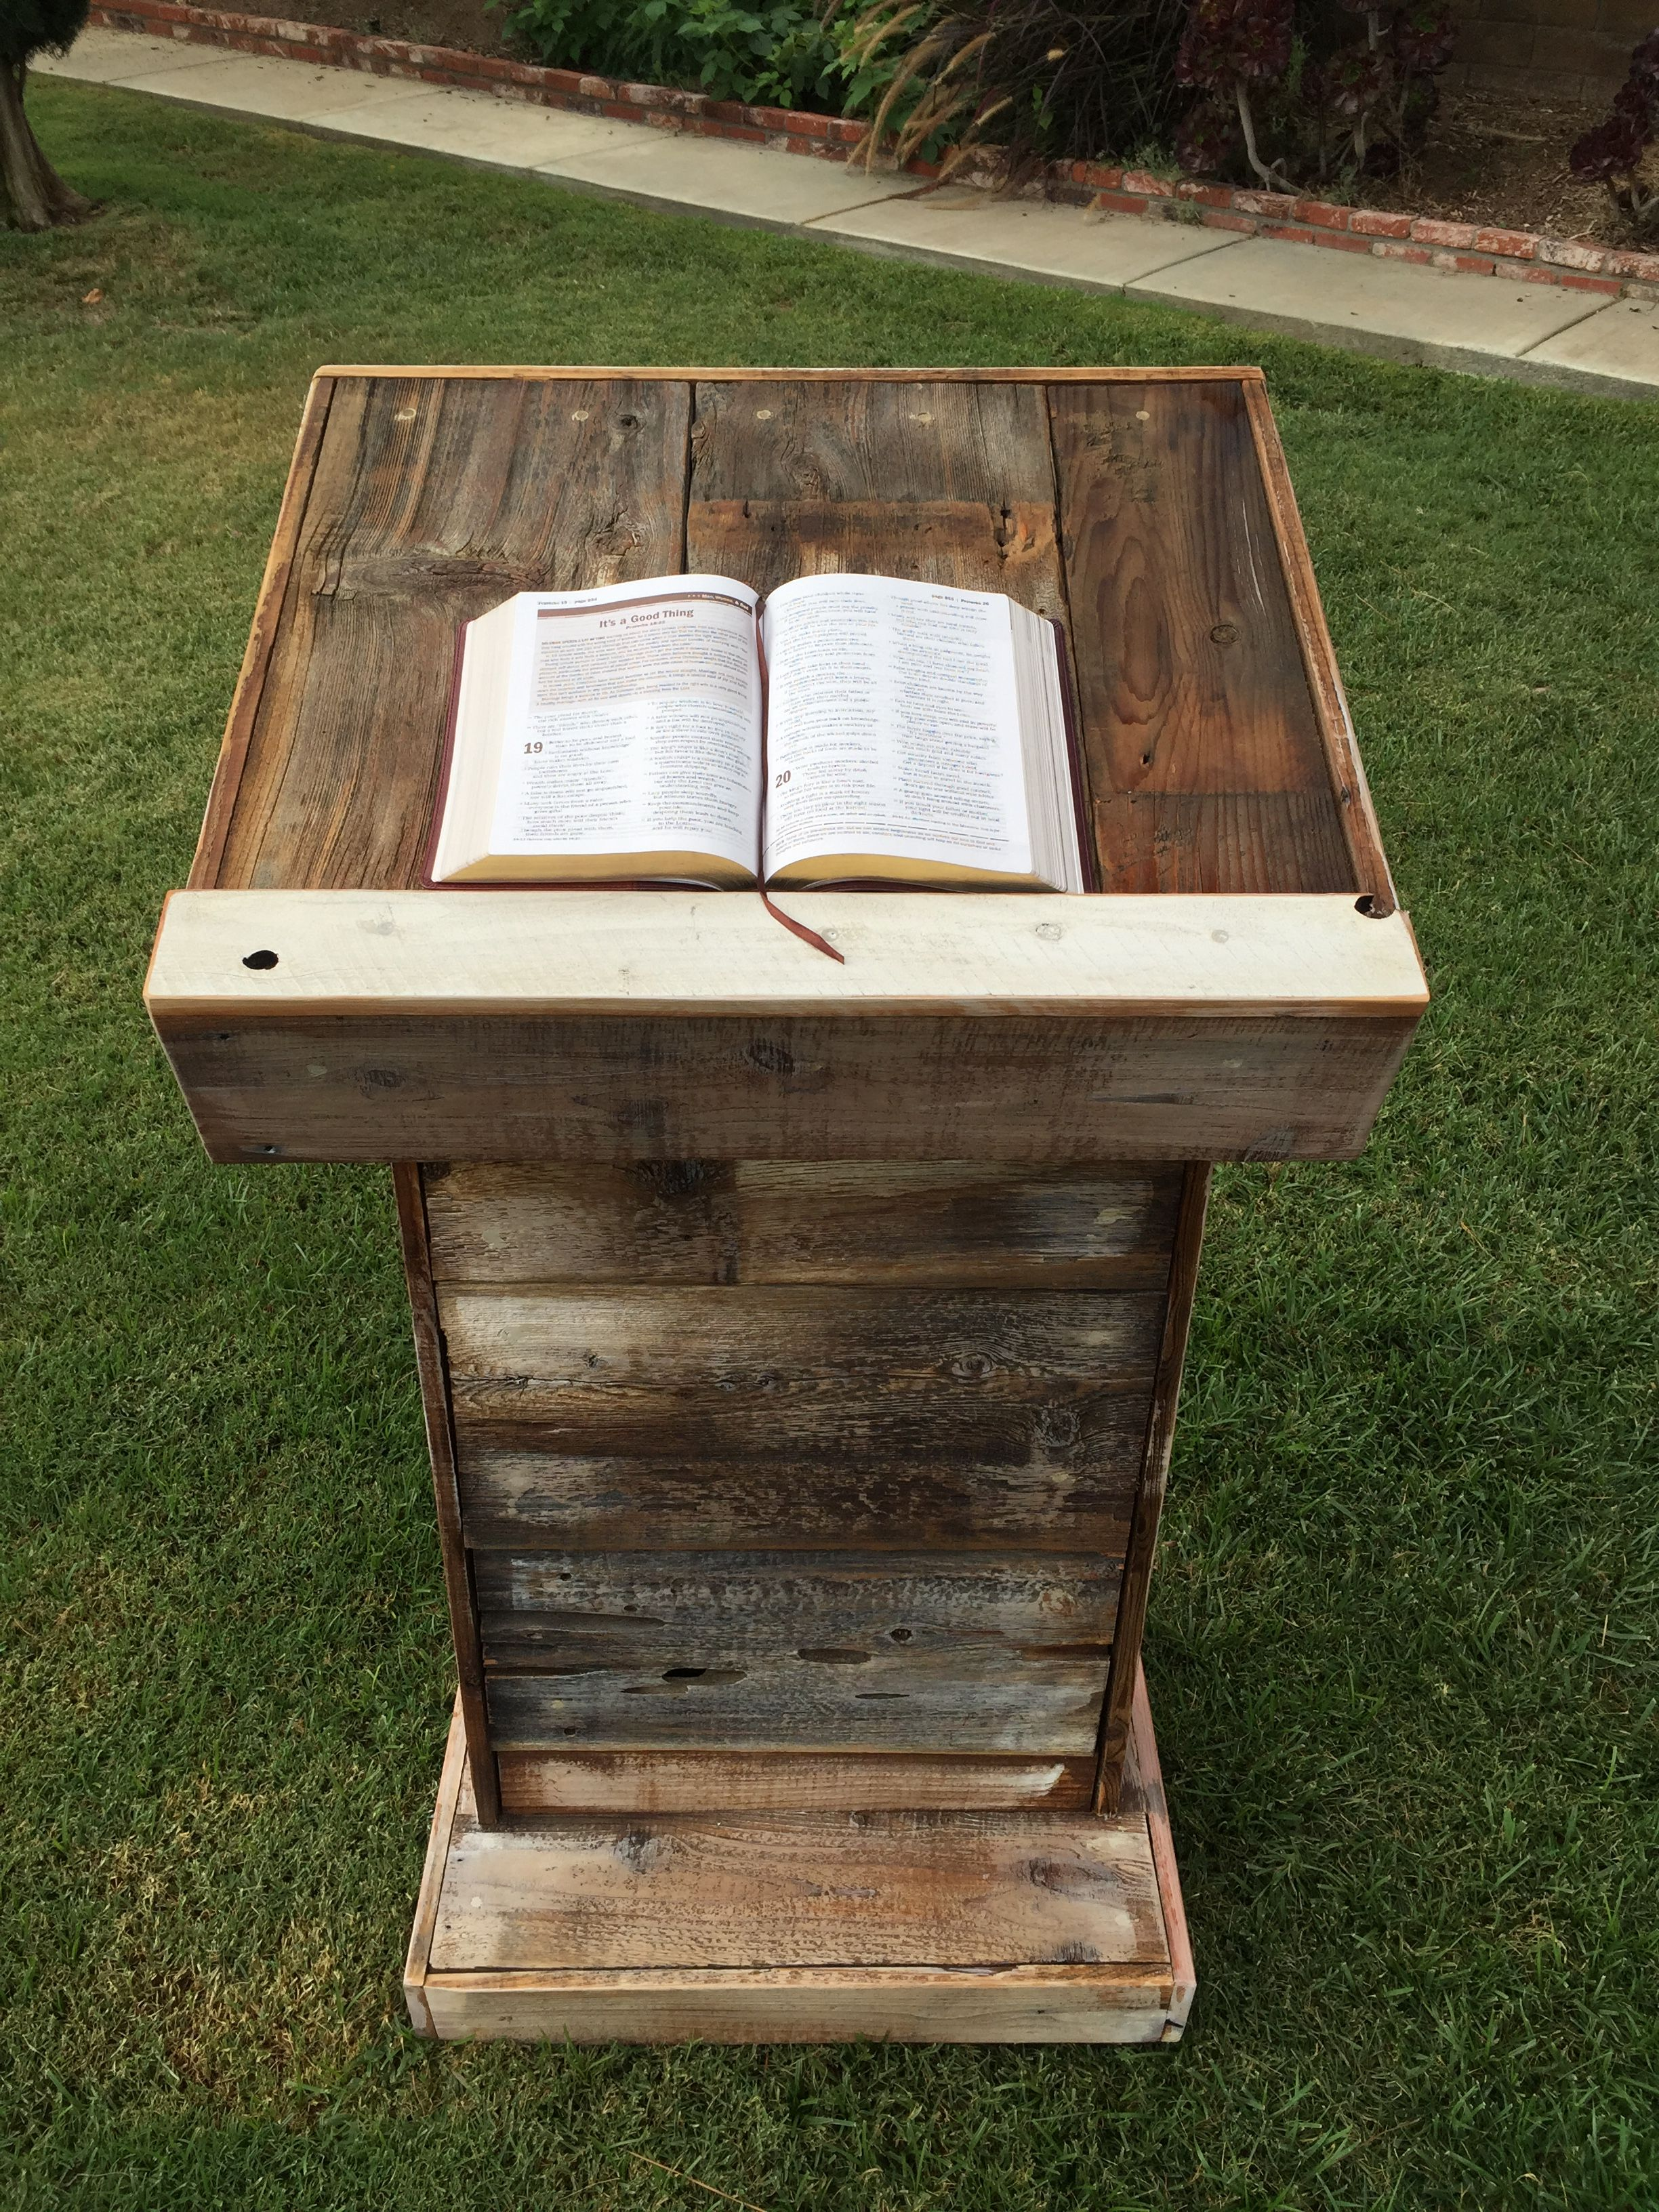 Made With Hardwood Solids With Cherry Veneers And Walnut: Custom Pulpit Made With Rustic Barn Wood.